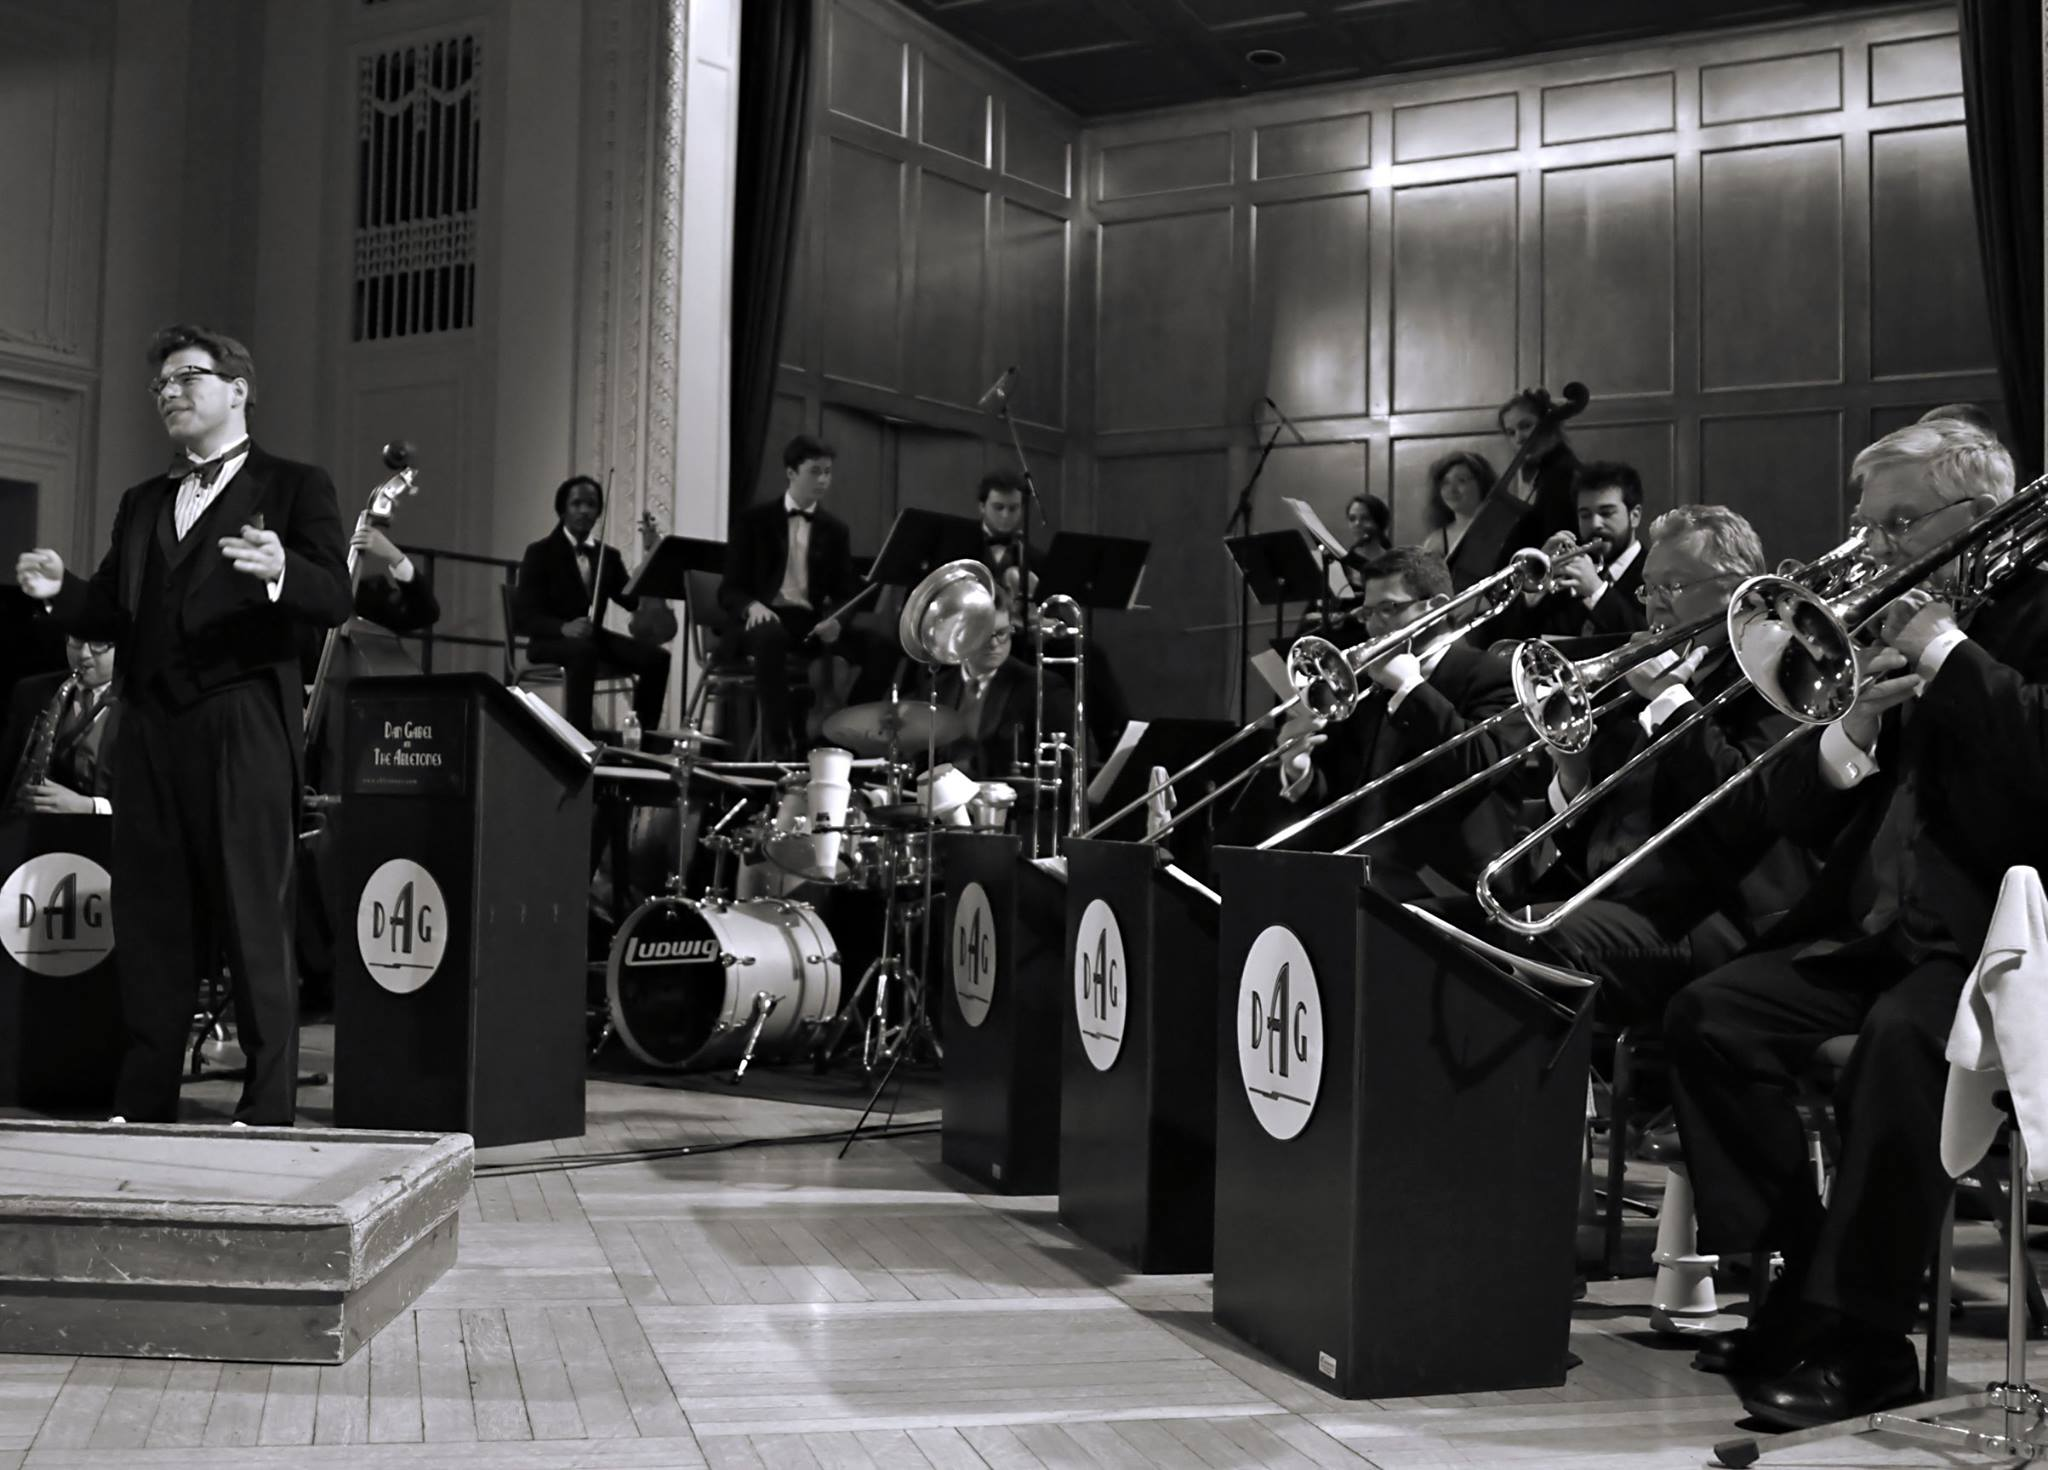 Dan Gabel's 2013 Master of Music recital at New England Conservatory featured the original scores from Vaughn Monroe's library. Performed by Gabel's big band, string section, and seven vocalists!